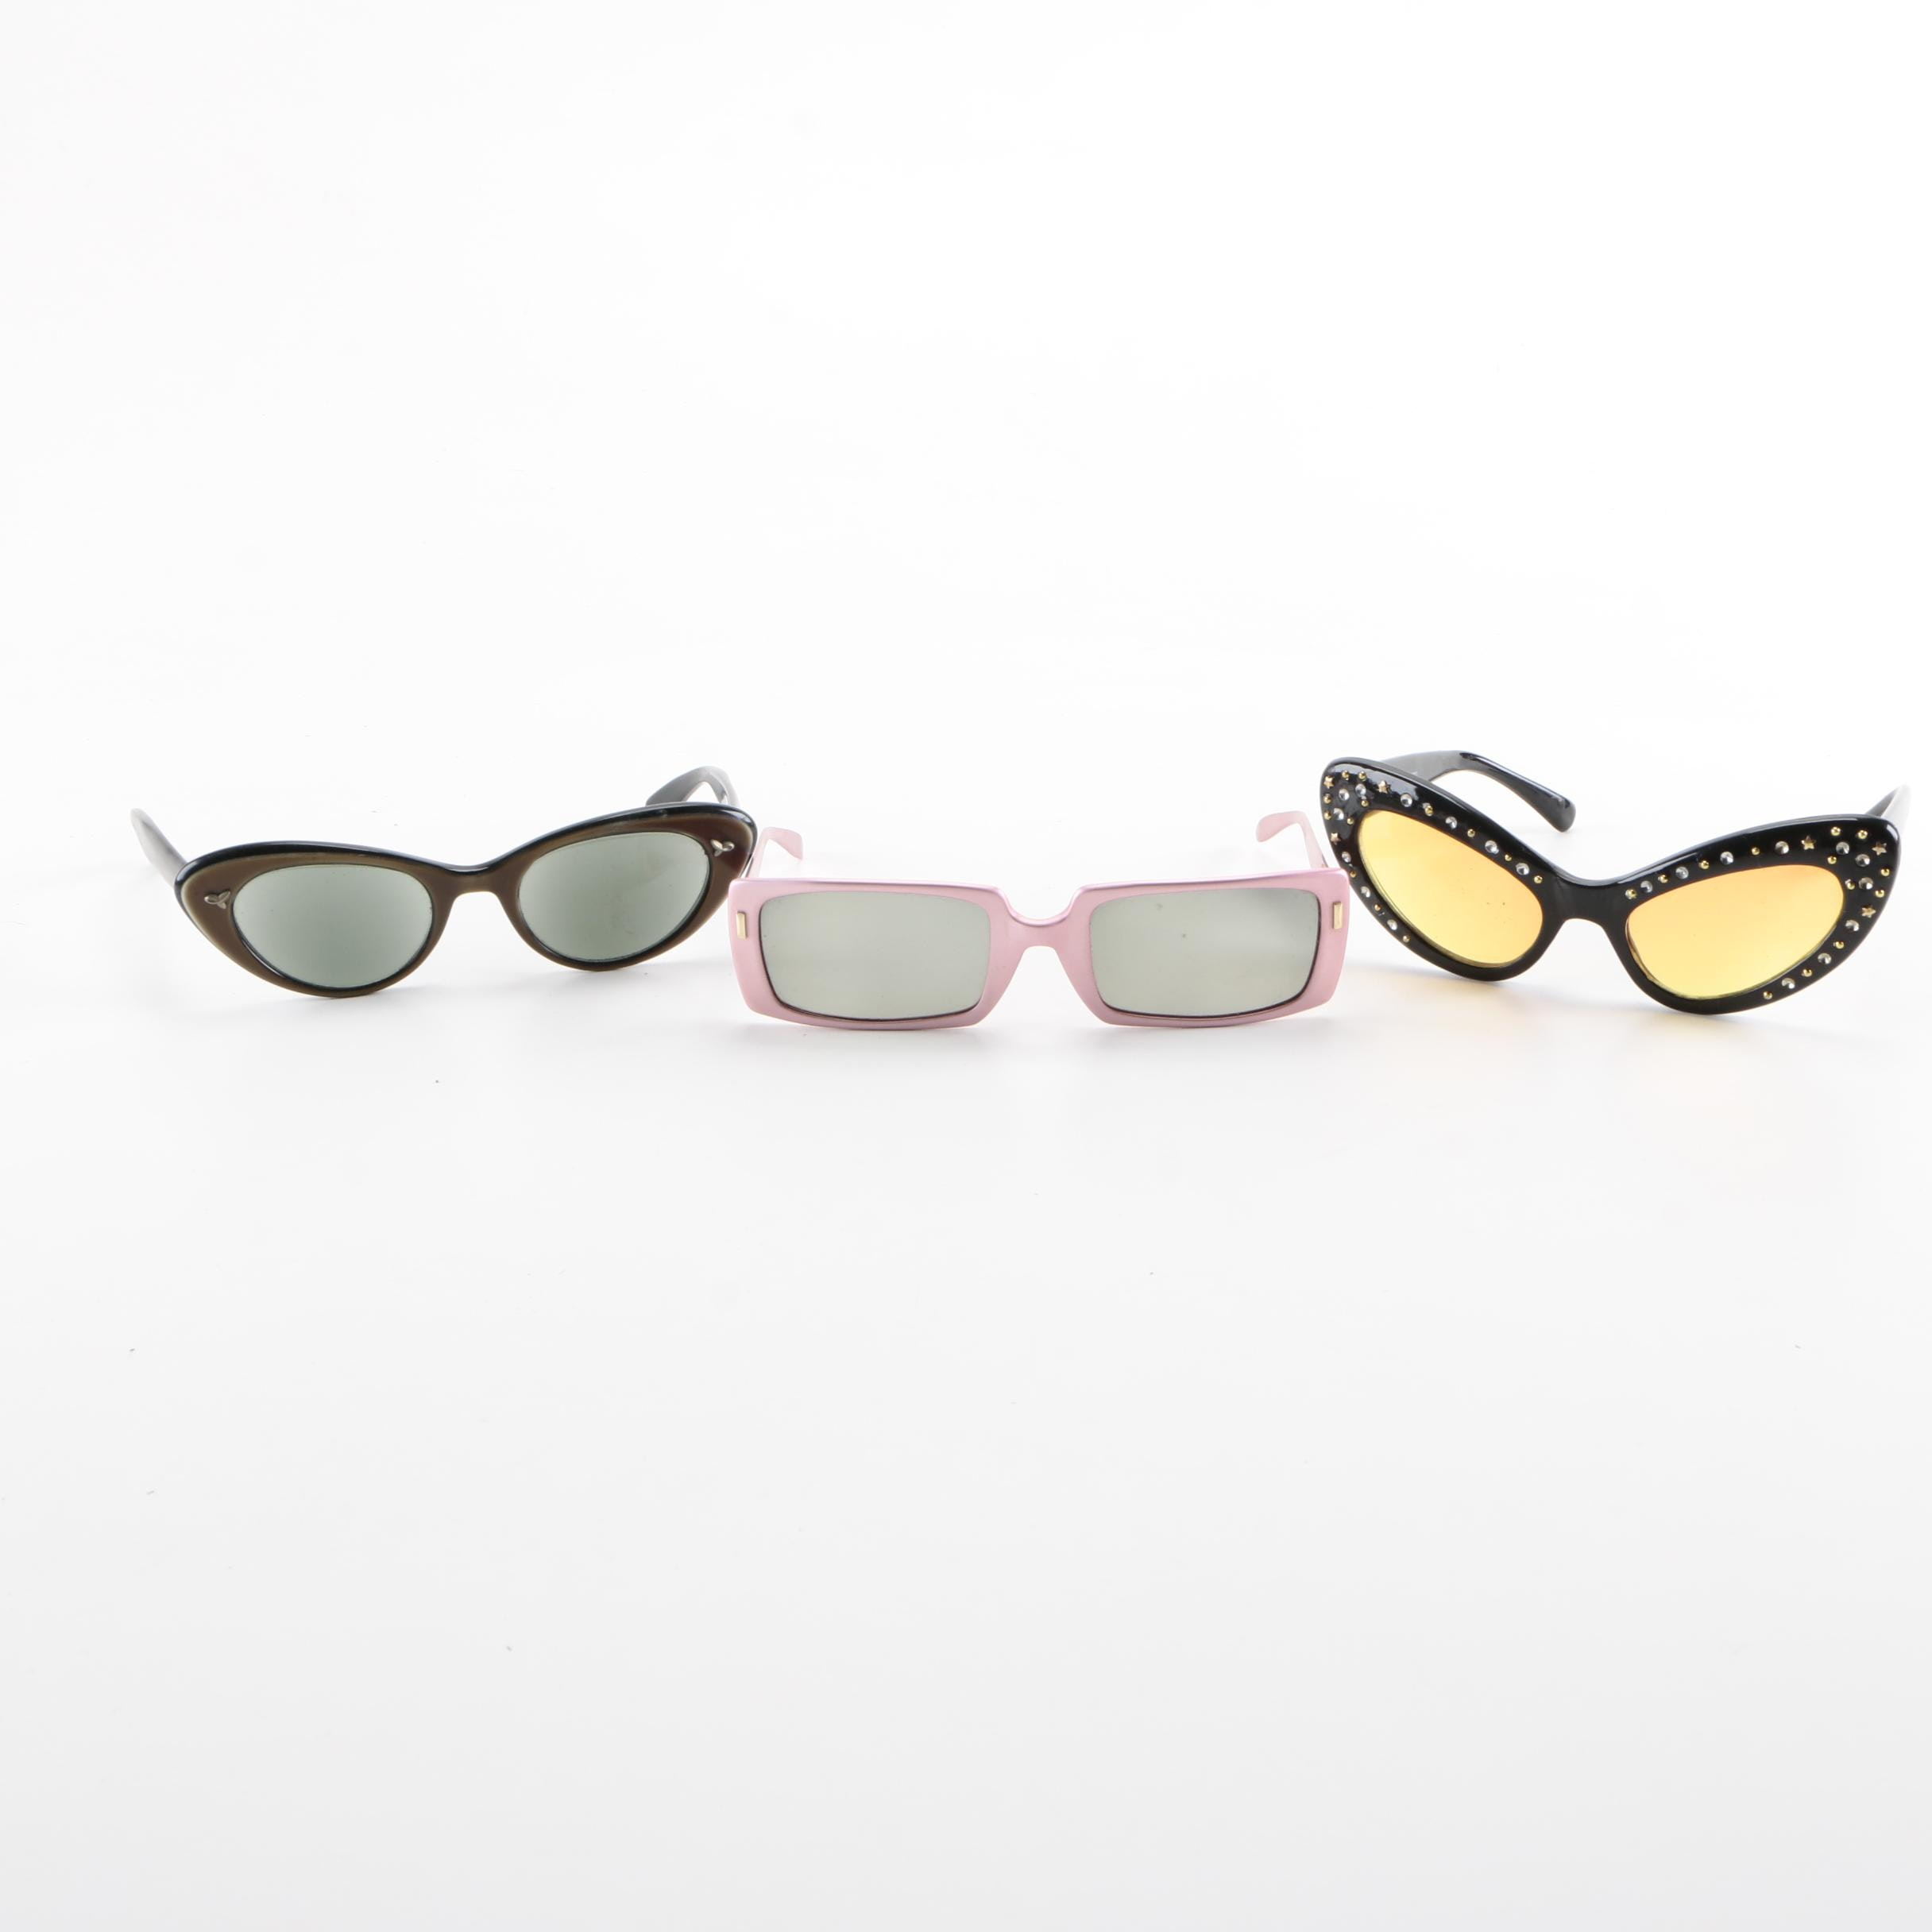 Vintage Sunglasses Including Dr. Peepers